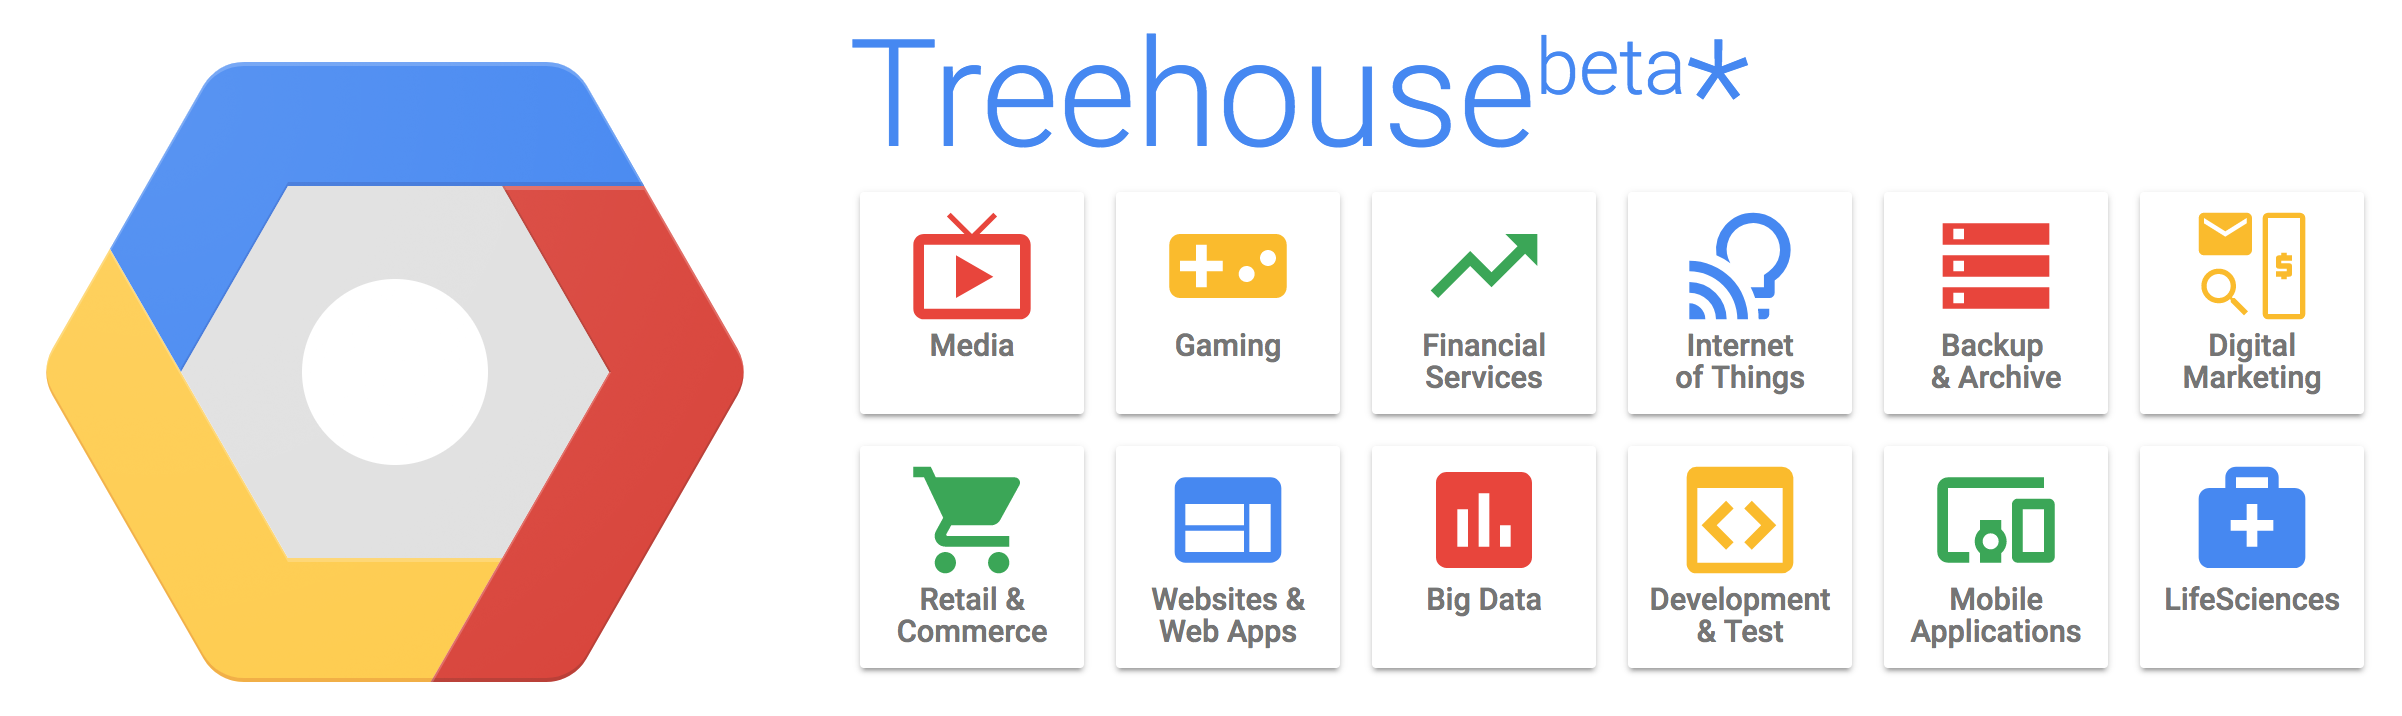 Treehouse-Beta-1.png